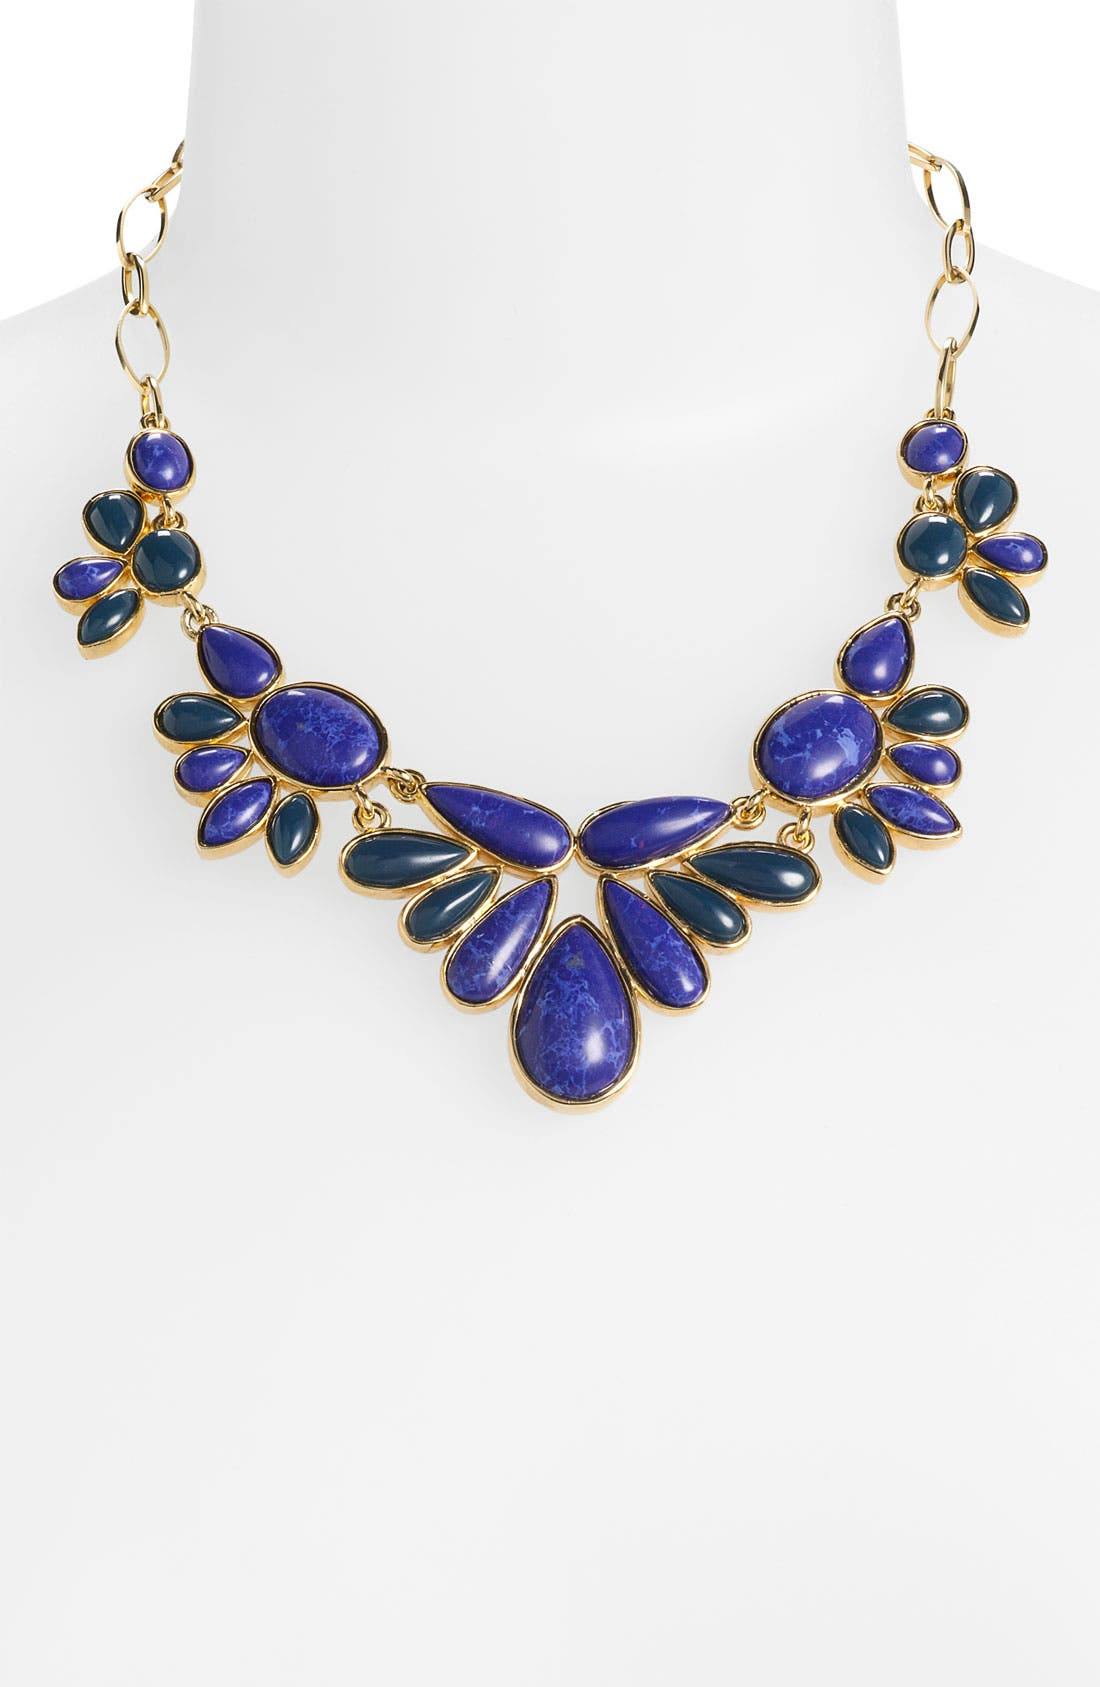 NORDSTROM, 'Lapis of Luxury' Frontal Necklace, Main thumbnail 1, color, 400